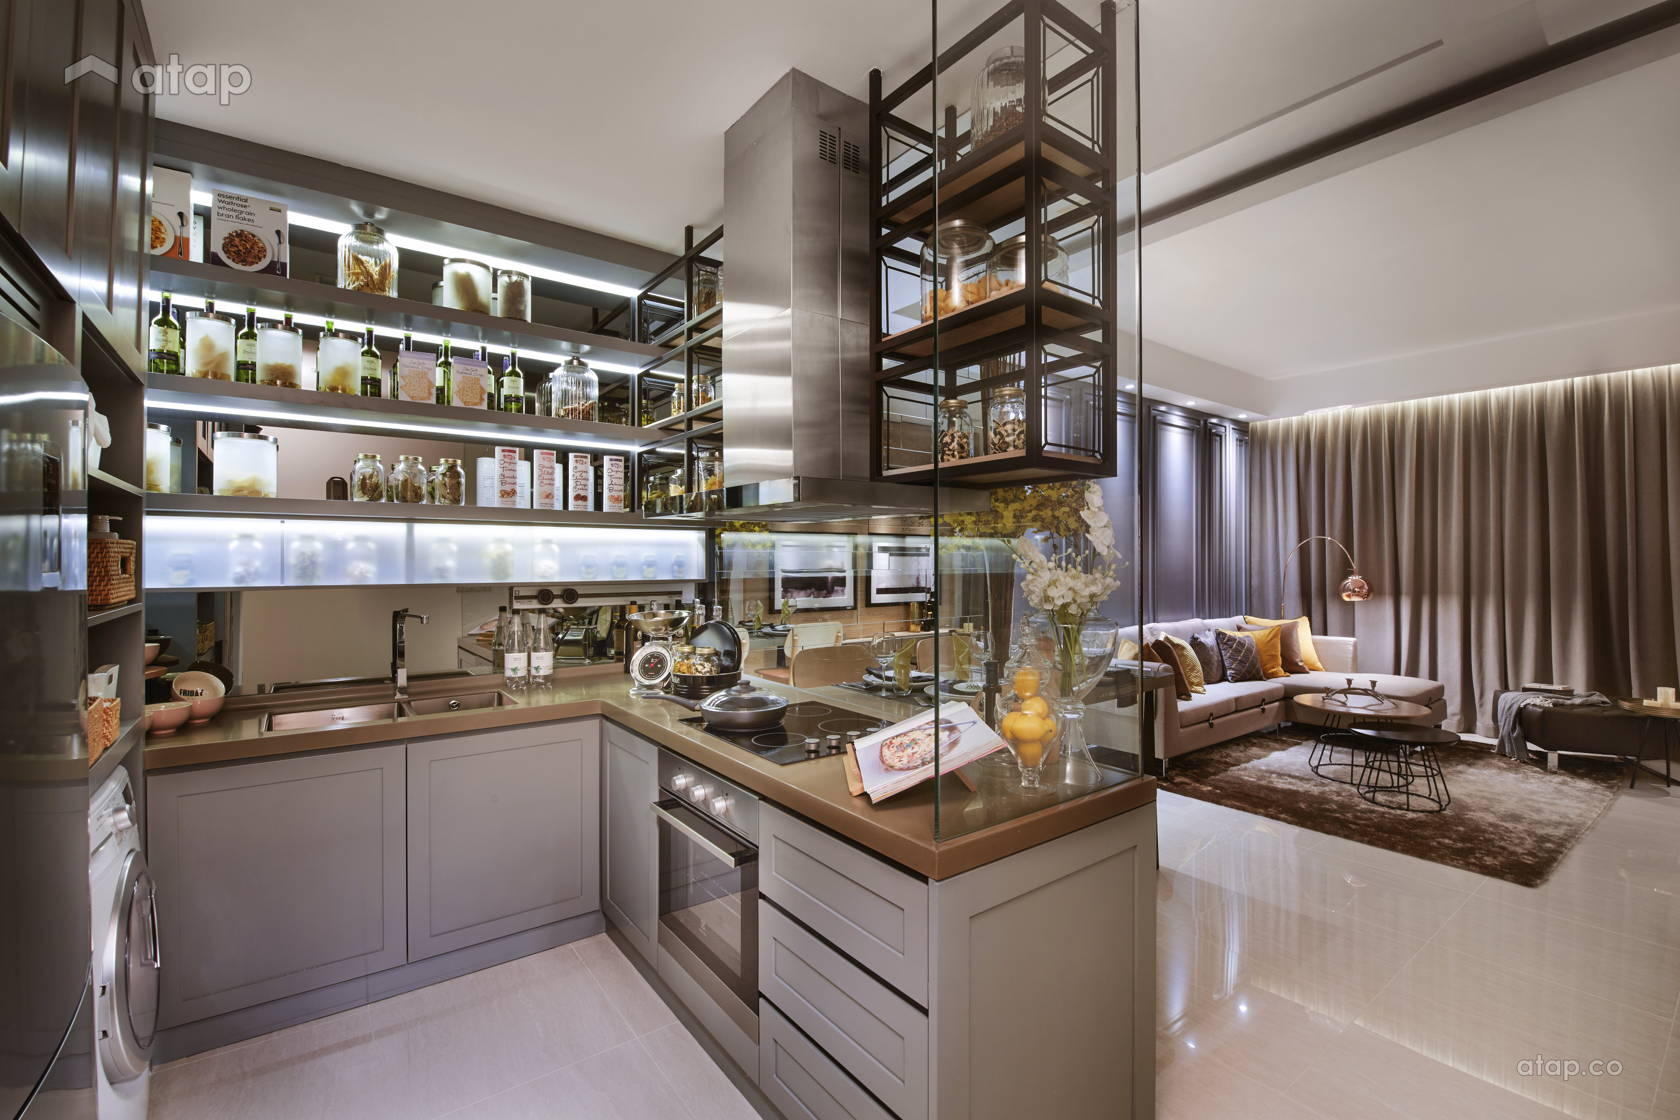 u-shaped-kitchen-with-open-shelving